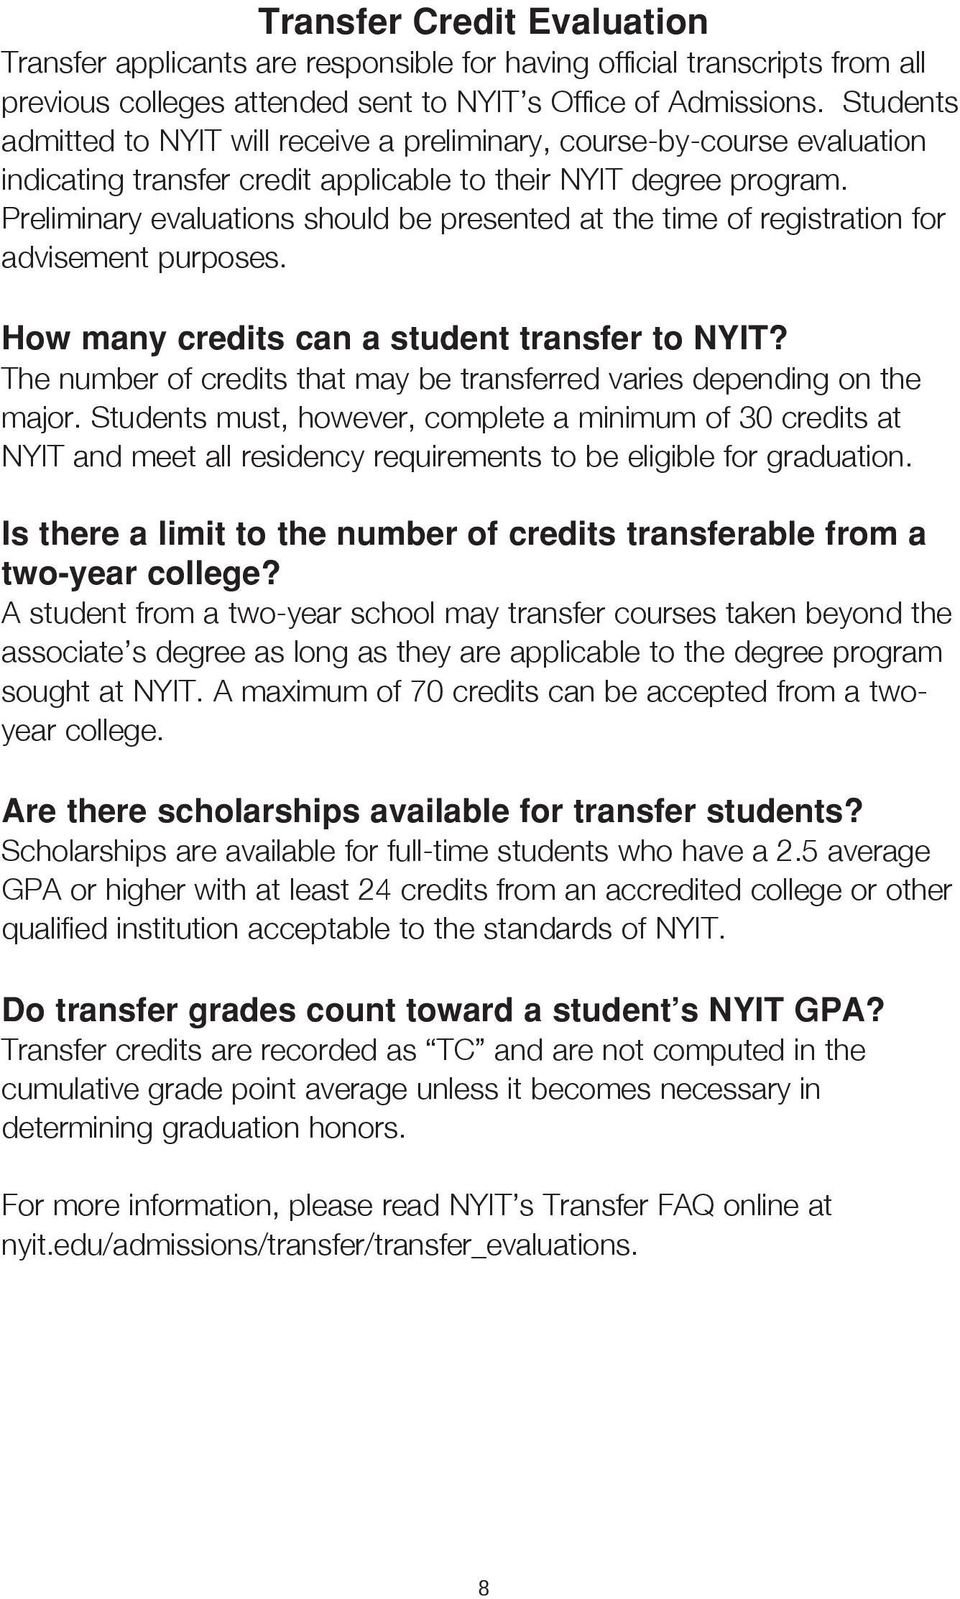 Preliminary evaluations should be presented at the time of registration for advisement purposes. How many credits can a student transfer to NYIT?